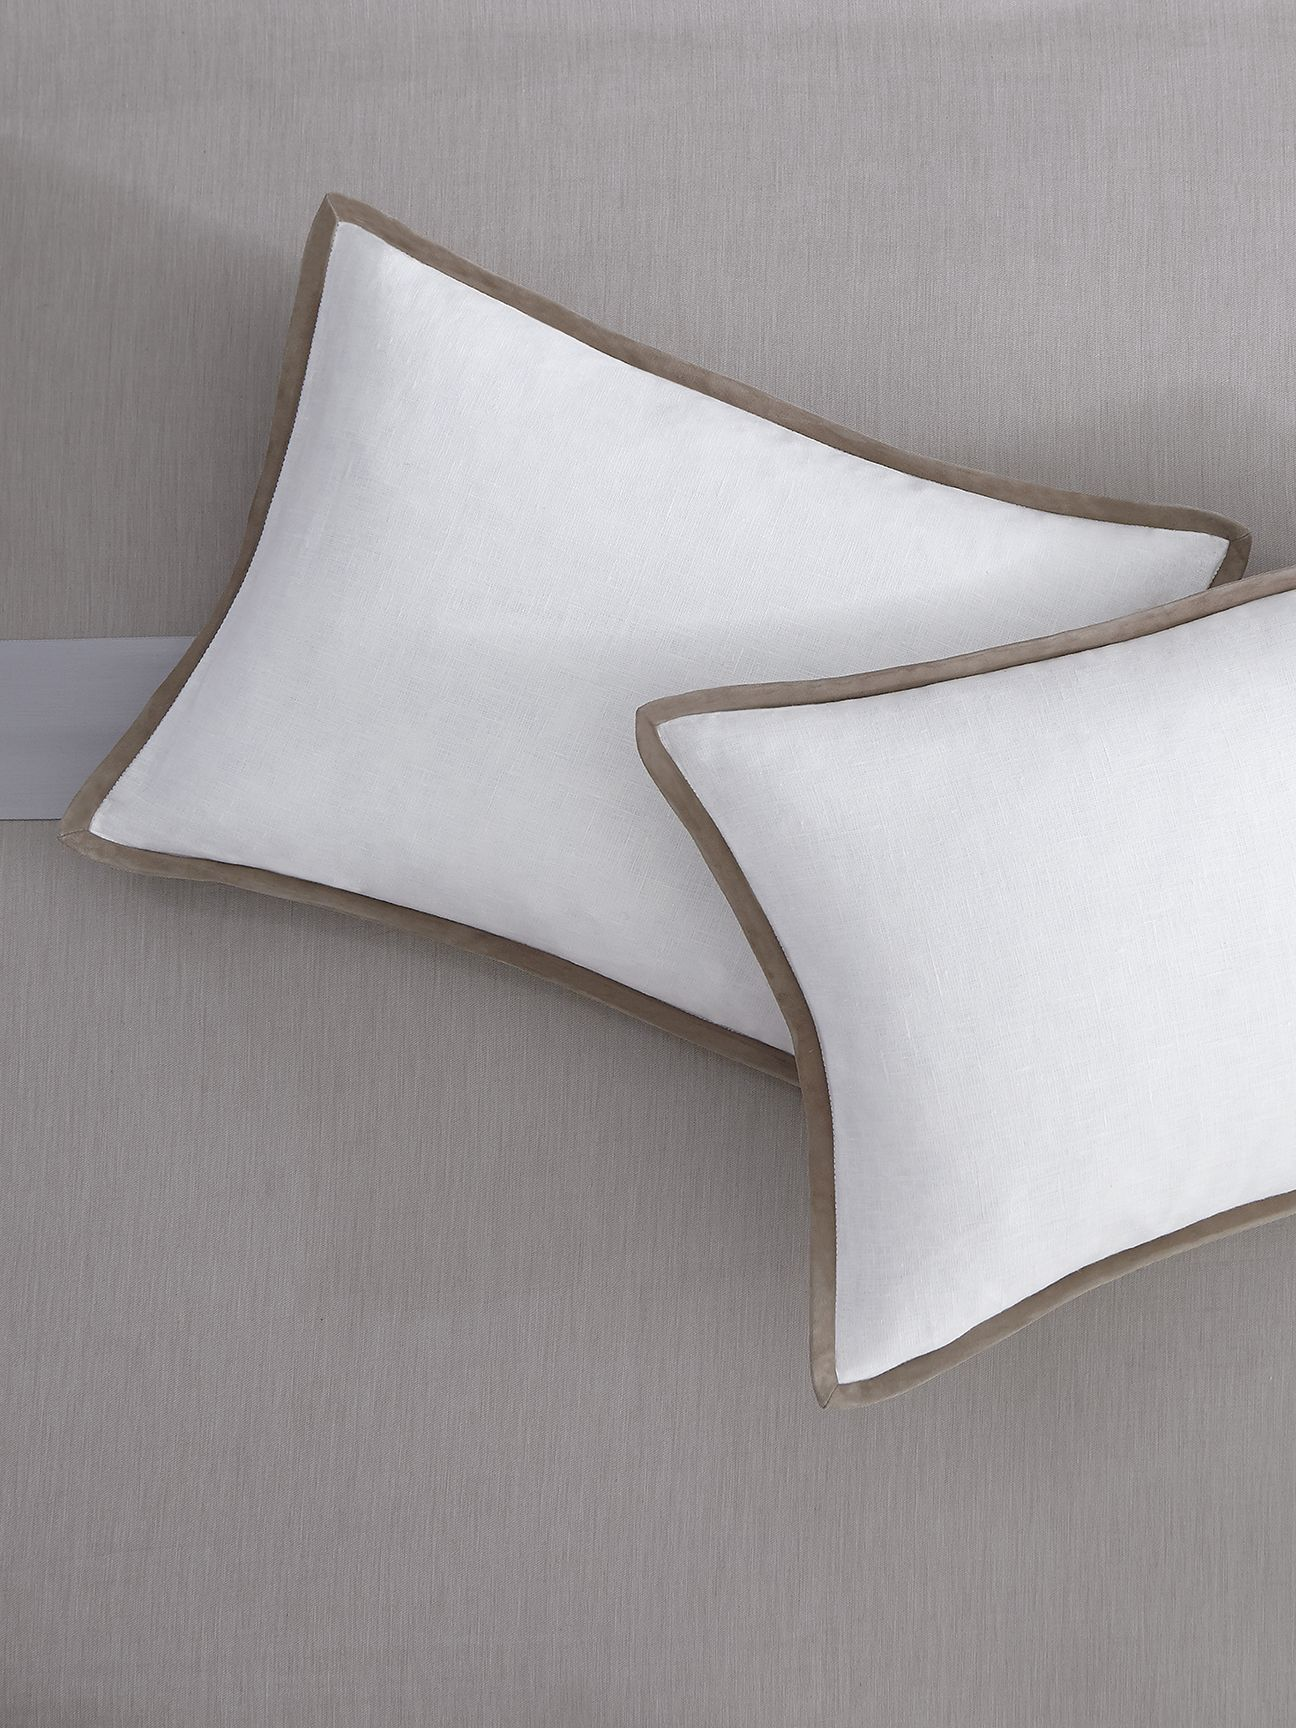 Addia is reminiscent of elegant simplicity with its clean, off-white linen base framed with a velvety suede border. It's the ideal decorative pillow to accompany any design.